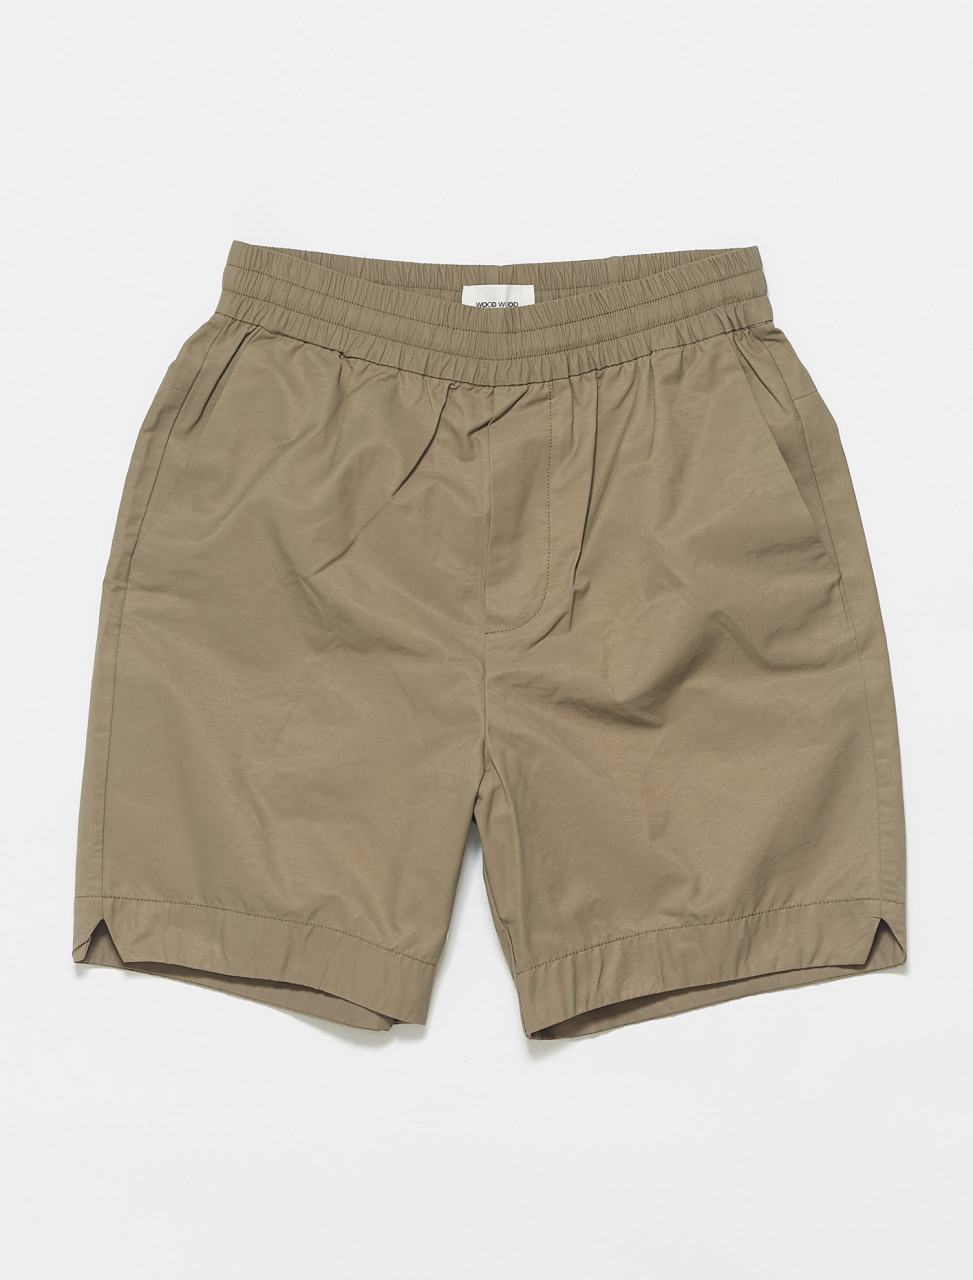 325-12015203-117M WOOD WOOD BALTAZAR SHORTS MOSS